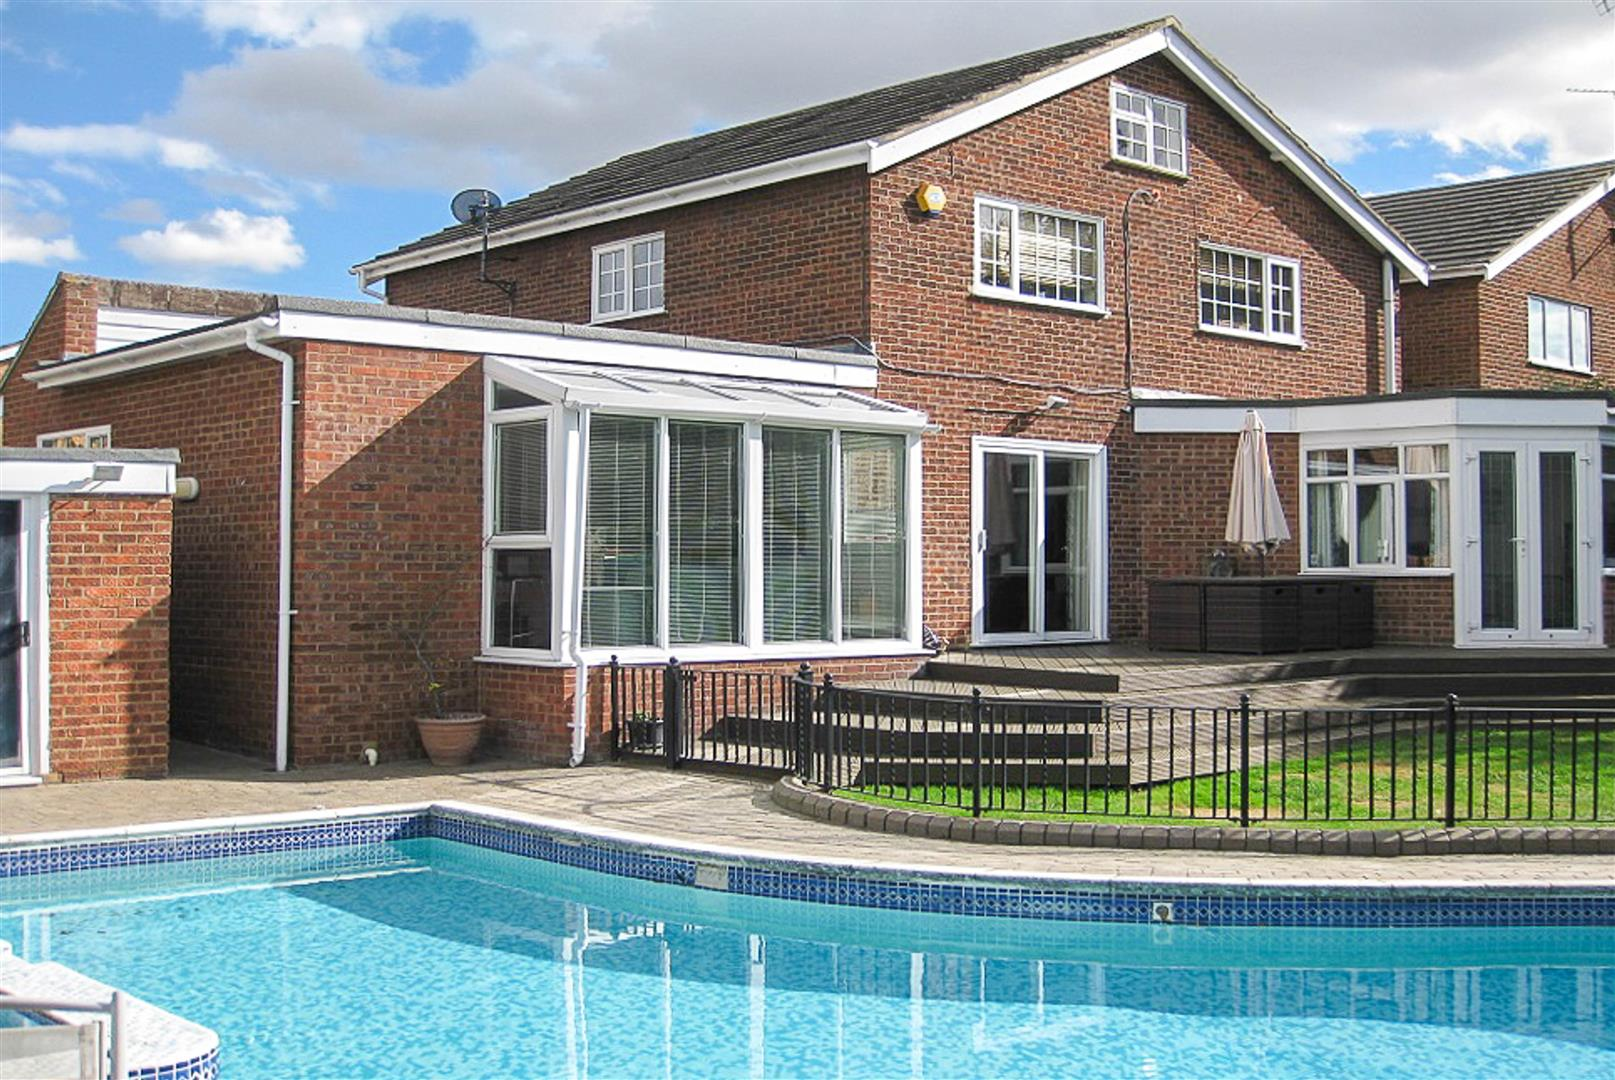 St James Park Chelmsford Chelmsford Property For Sale Keith Ashton